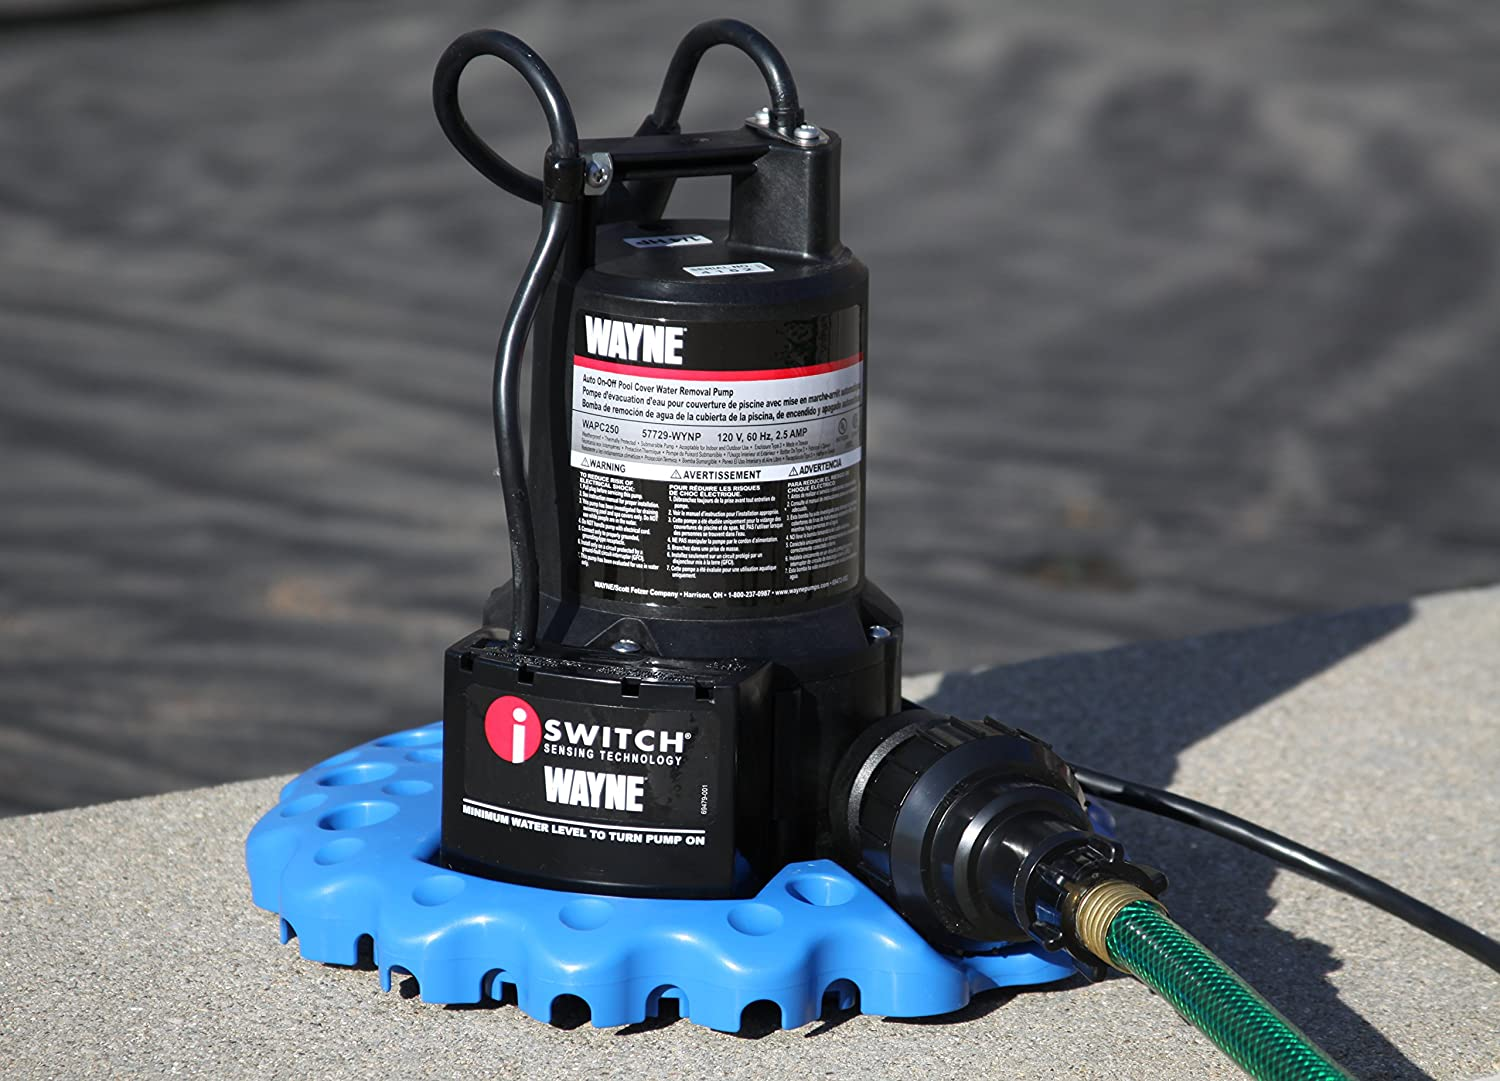 Best Pool Cover Pumps - Product Reviews and Buyer's Guide 5